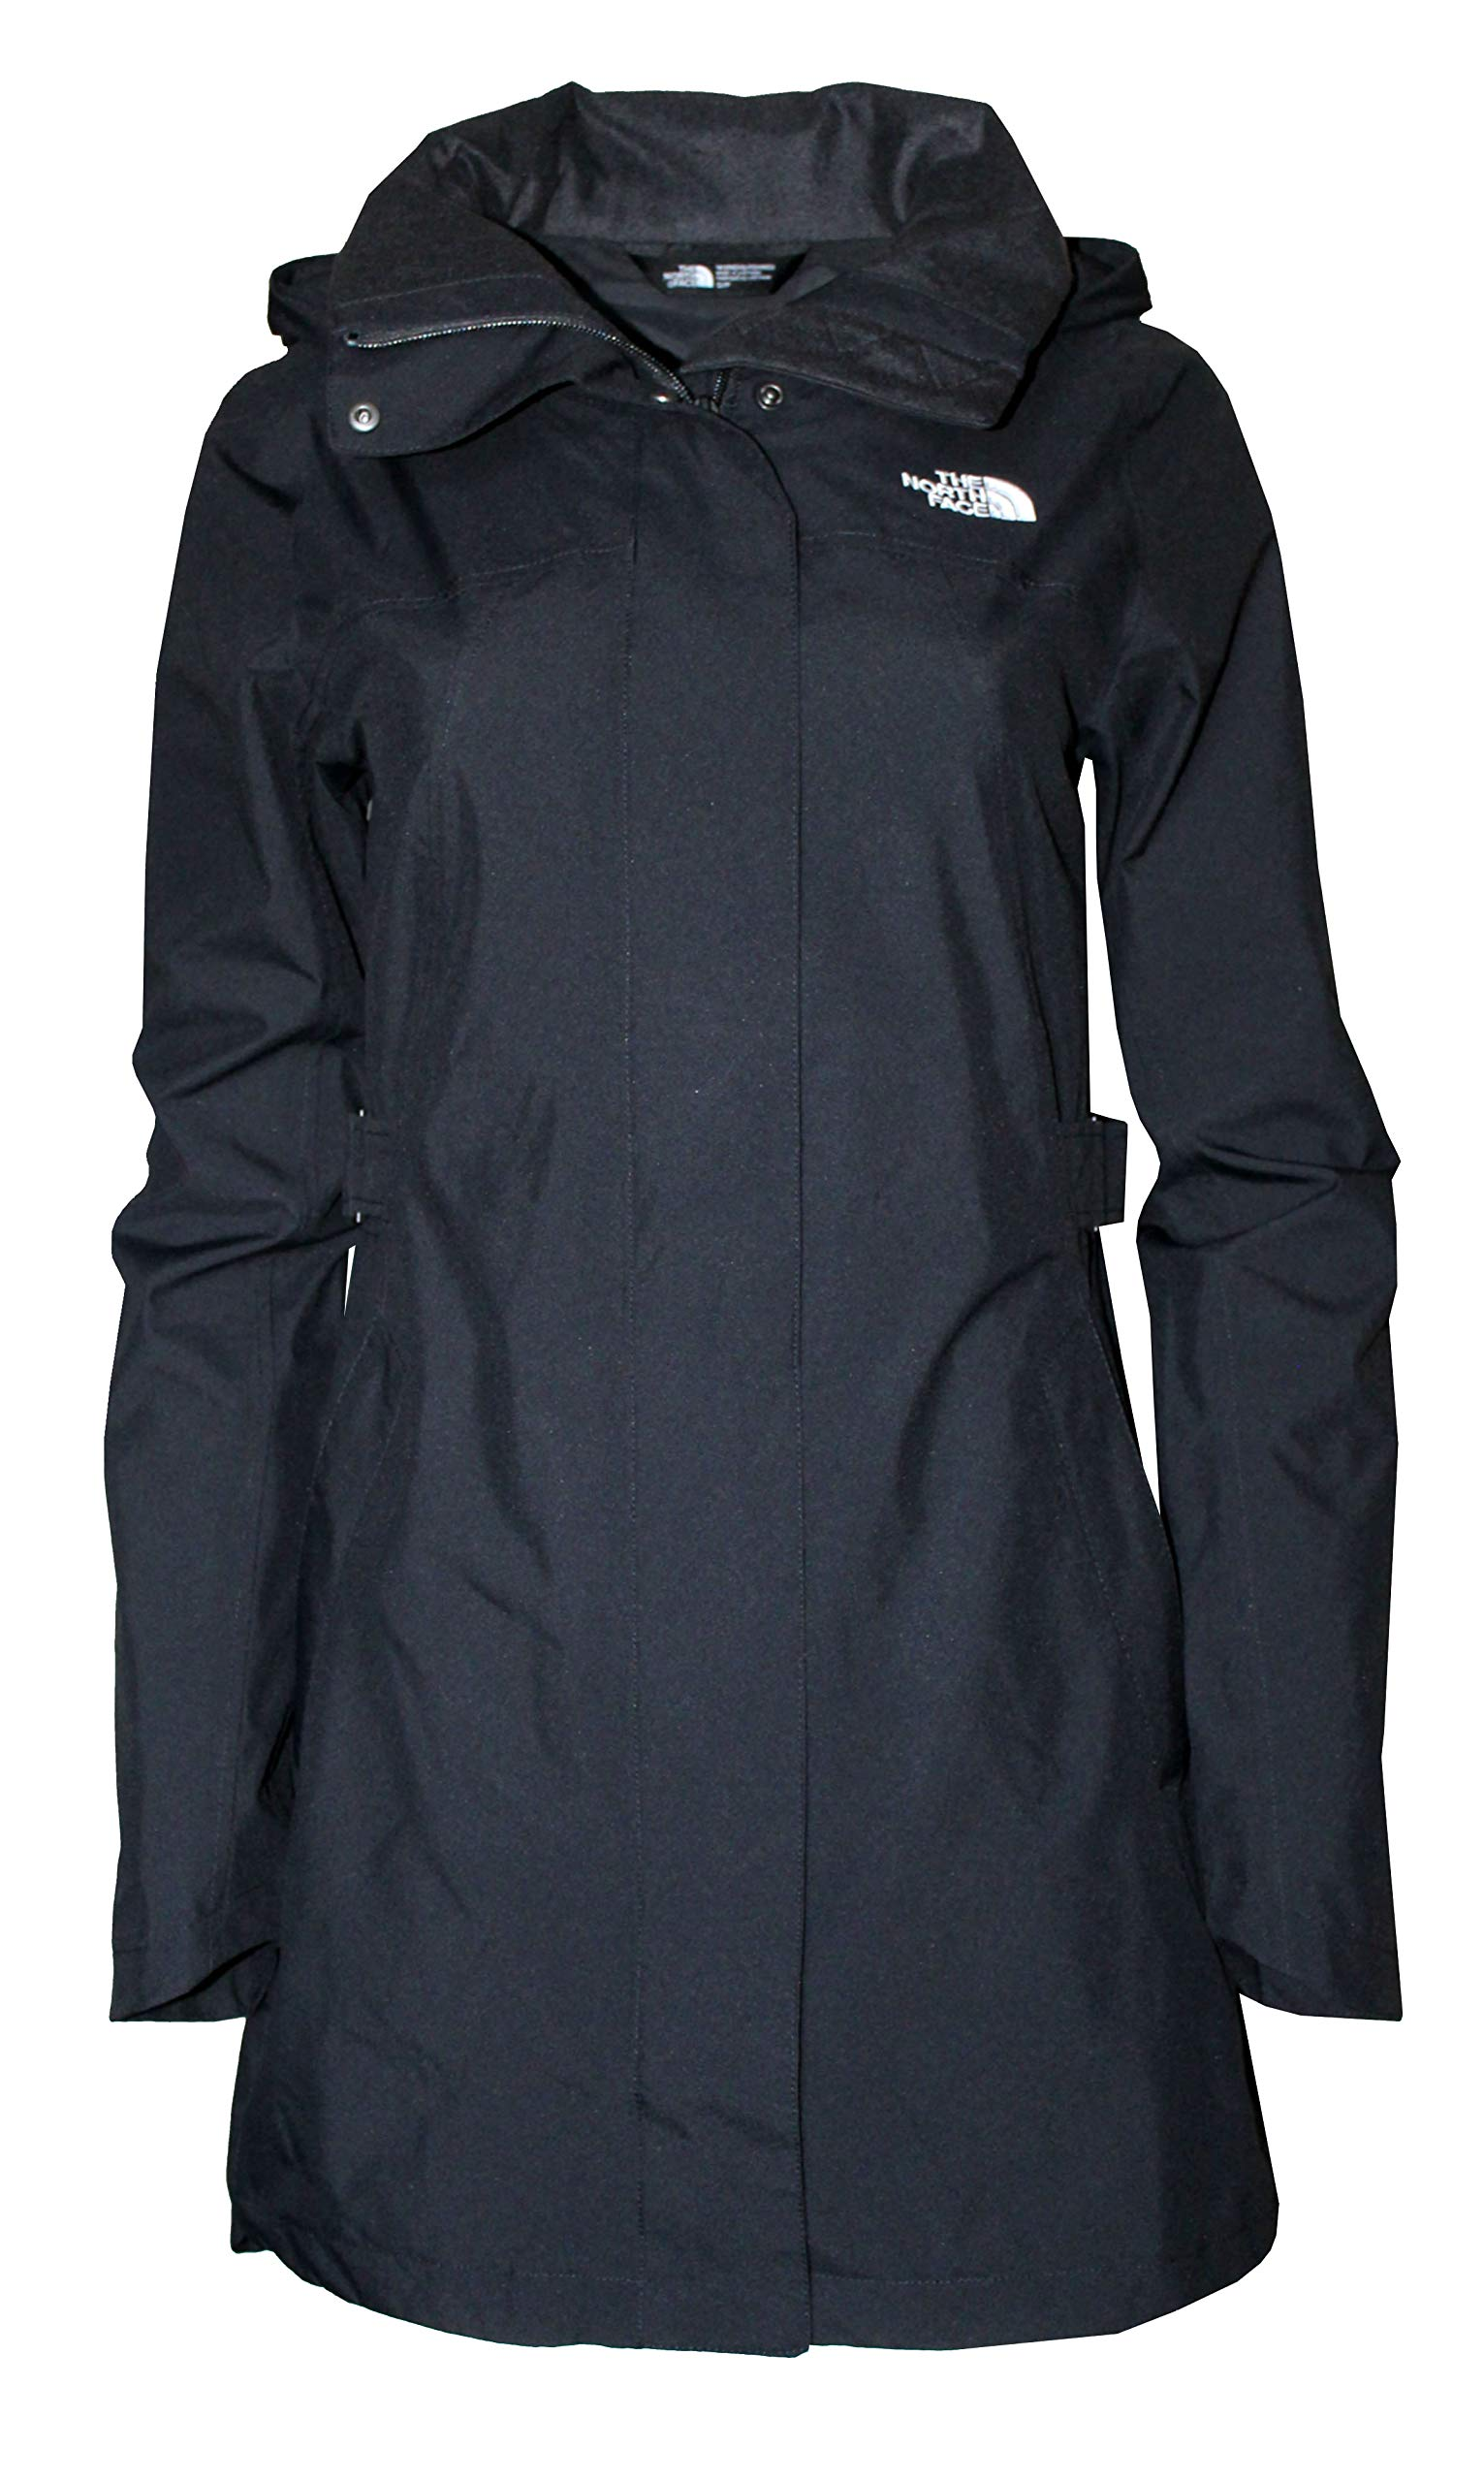 The North Face Women's Laney Trench II Jacket